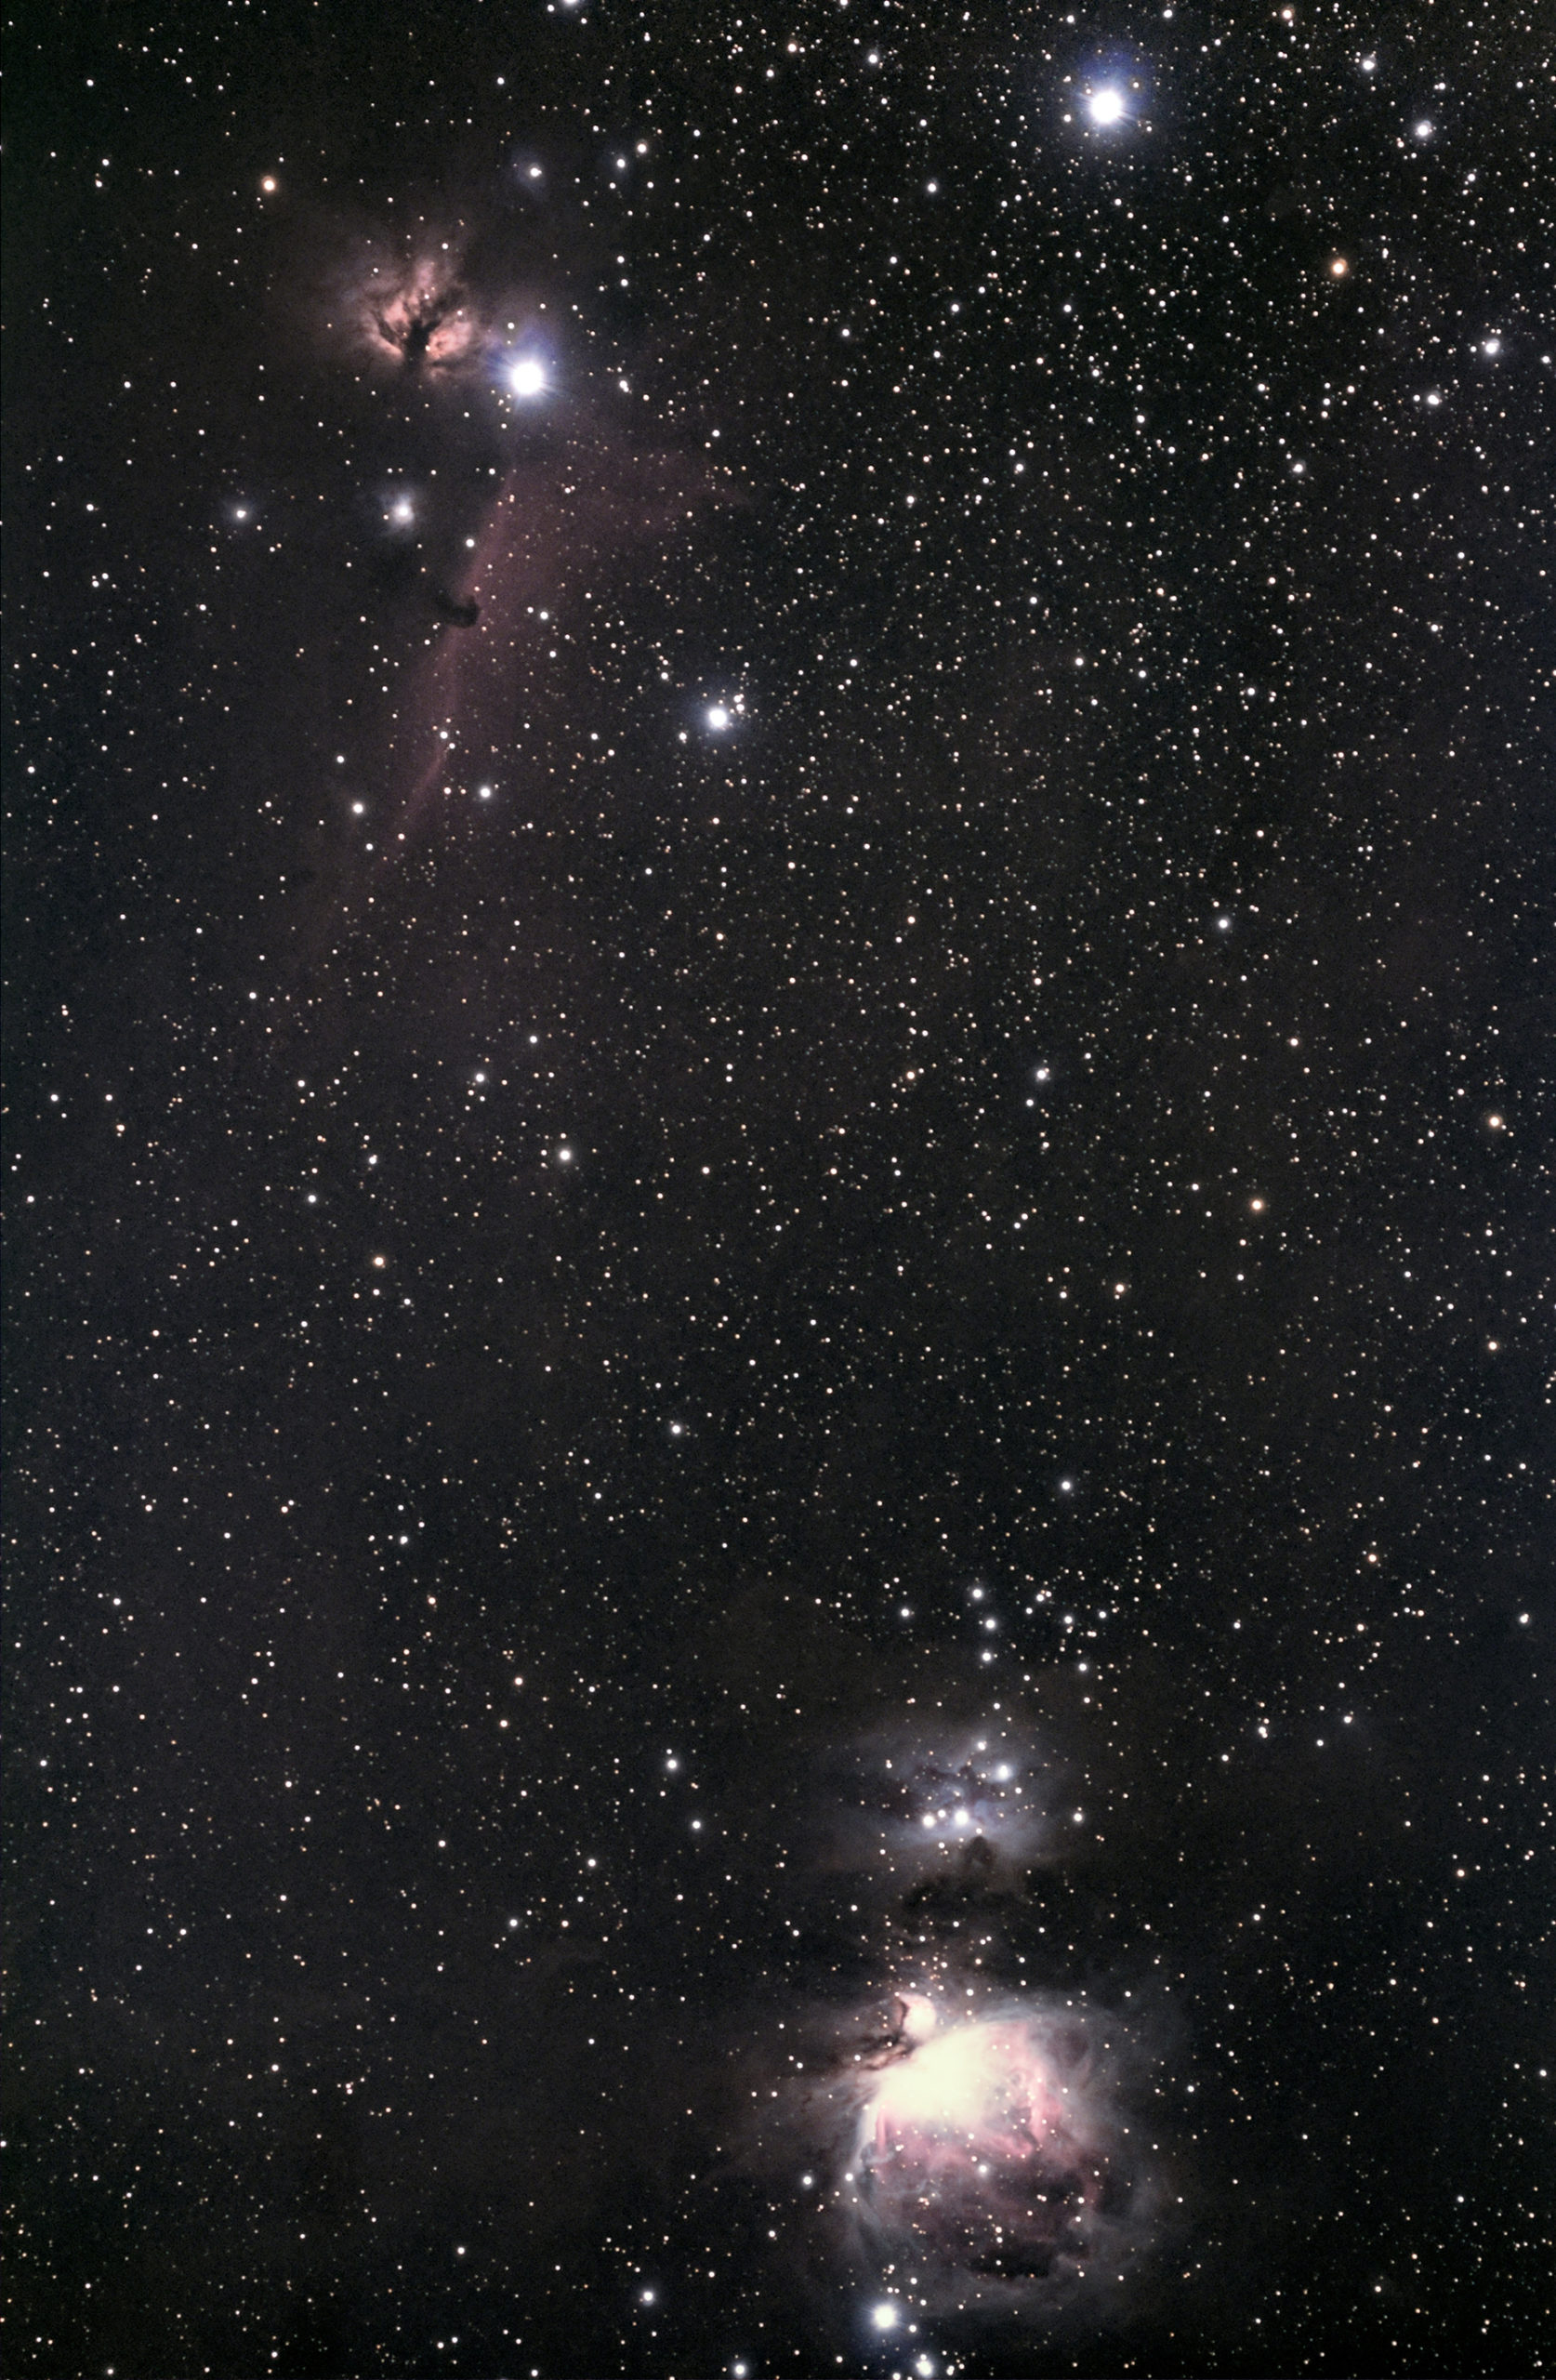 Orion Complex, taken in December 2019